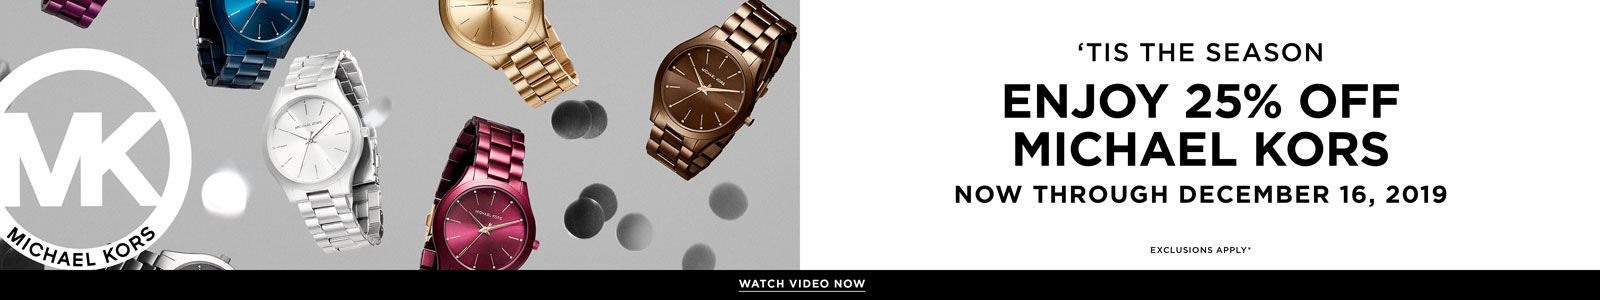 Tis the Season, Enjoy 25 percent off, Michael Kors, Now Through December 16, 2019, Michael Kors, Watch Video Now